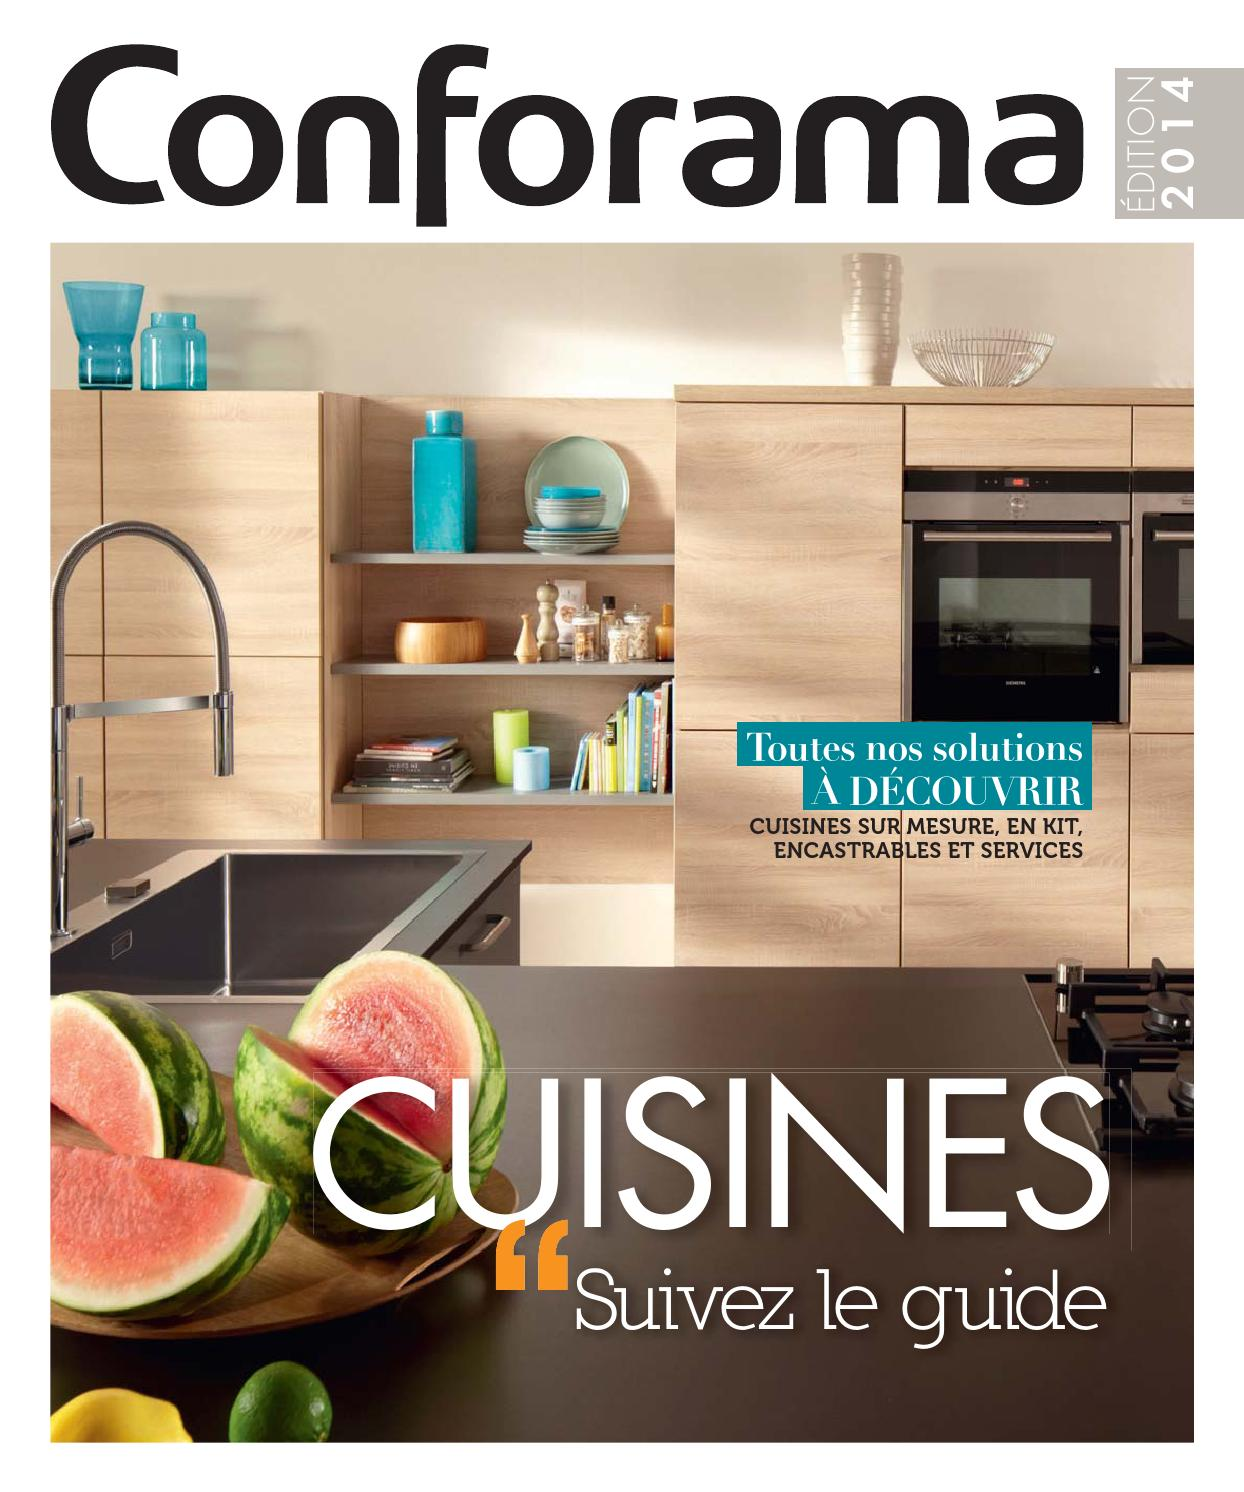 Cuisine Salsa Conforama Catalogue Conforama Guide Cuisines 2014 By Joe Monroe Issuu